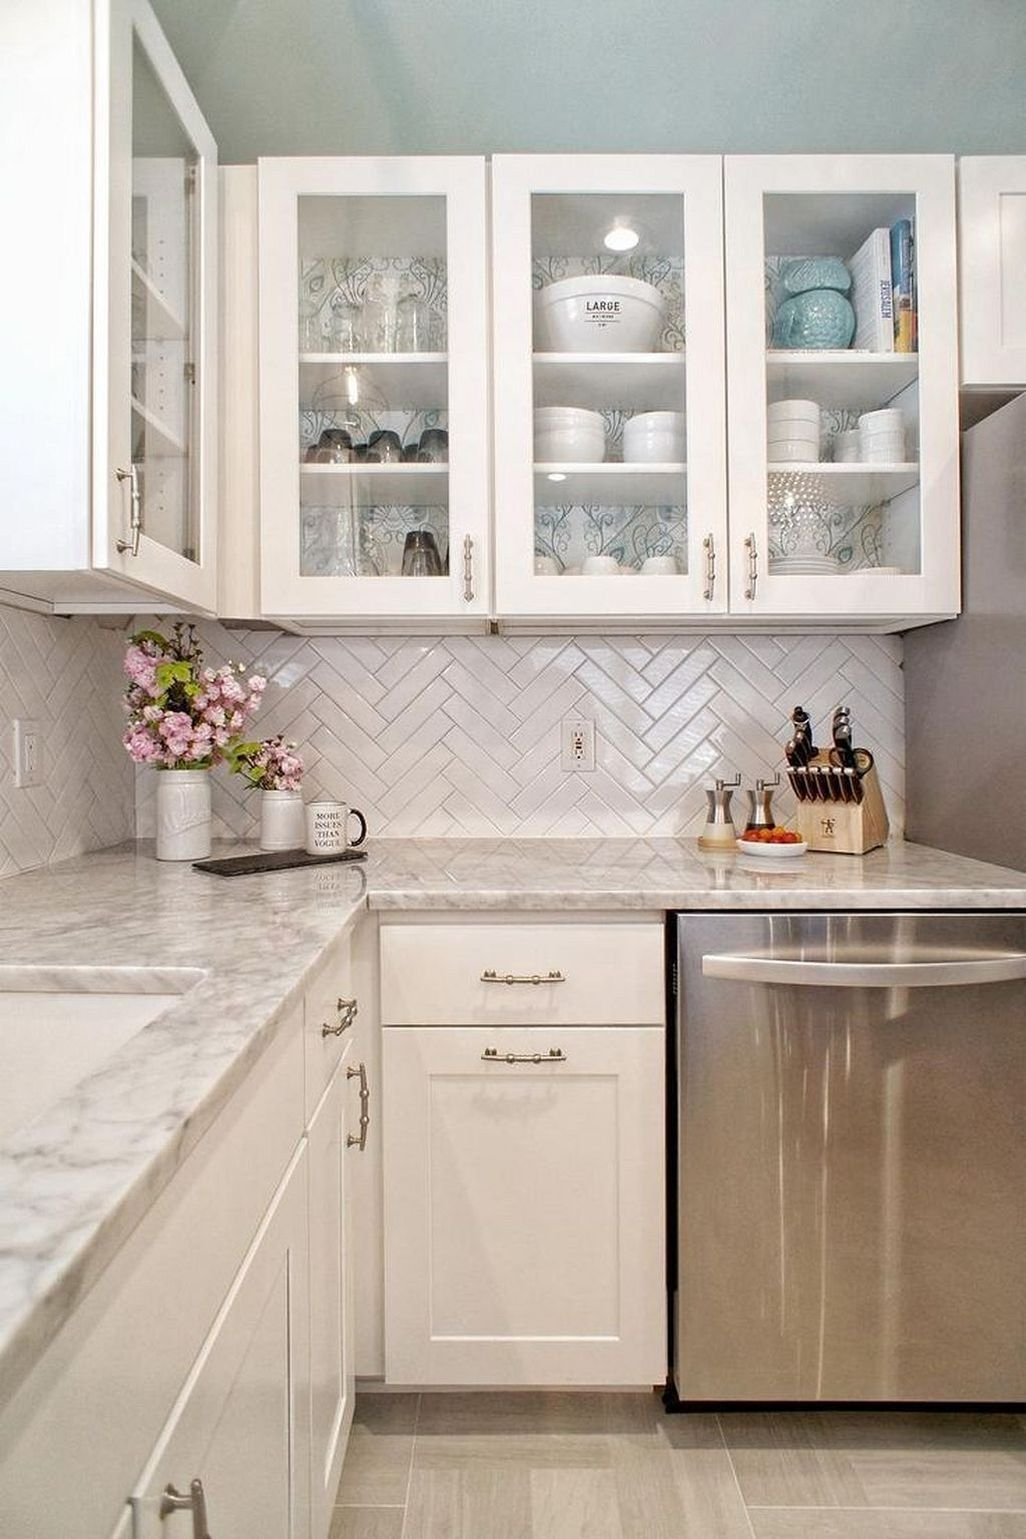 Awesome White Kitchen Backsplash Design Ideas 15